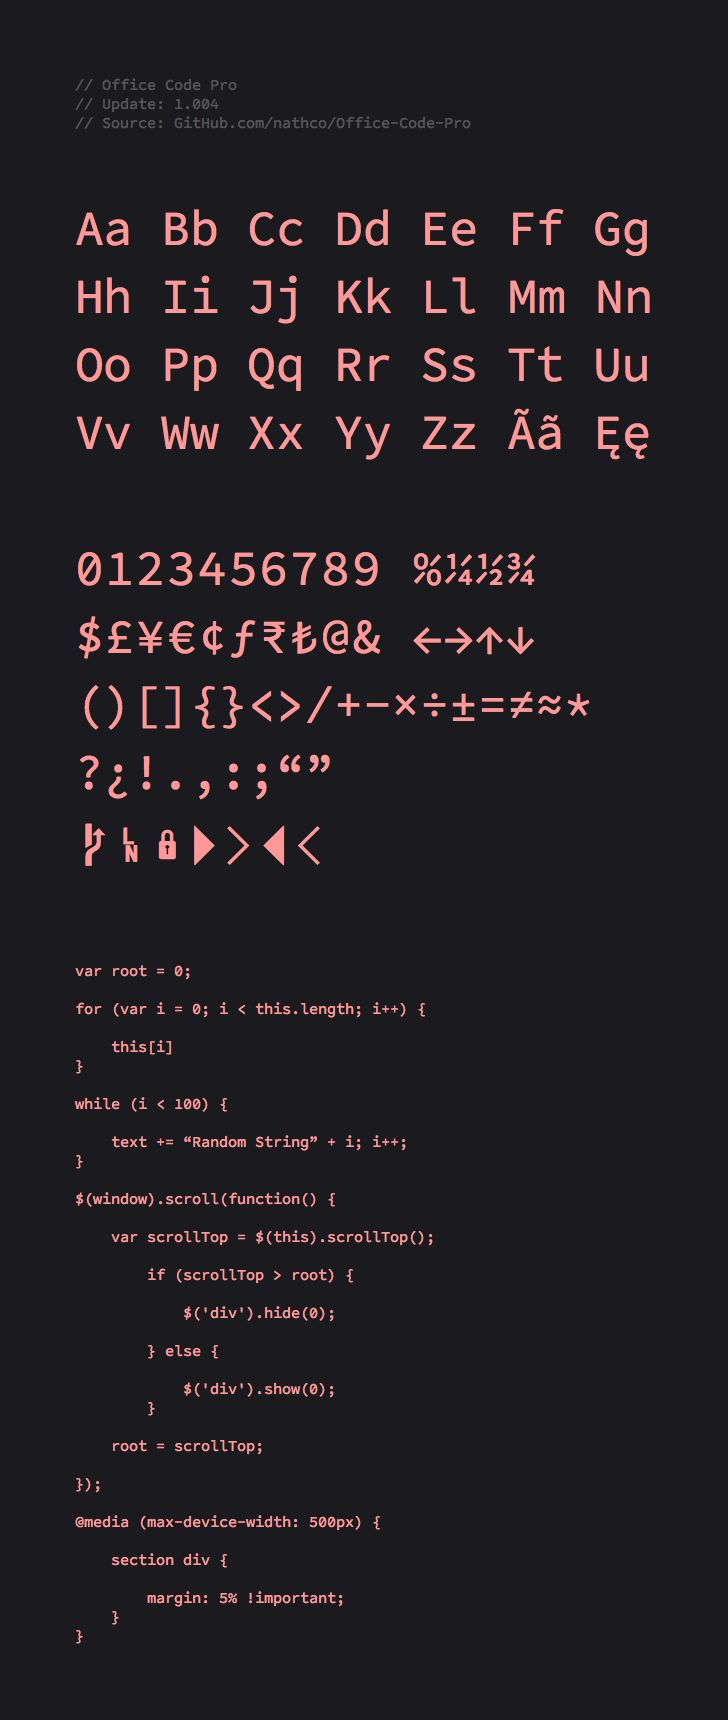 Office Code Pro is a customized version of Source Code Pro, the monospaced sans serif originally created by Paul D. Hunt for Adobe Systems Incorporated. The customizations were made specifically for text editors and coding environments, but are still very usable in other applications. #programmingfont